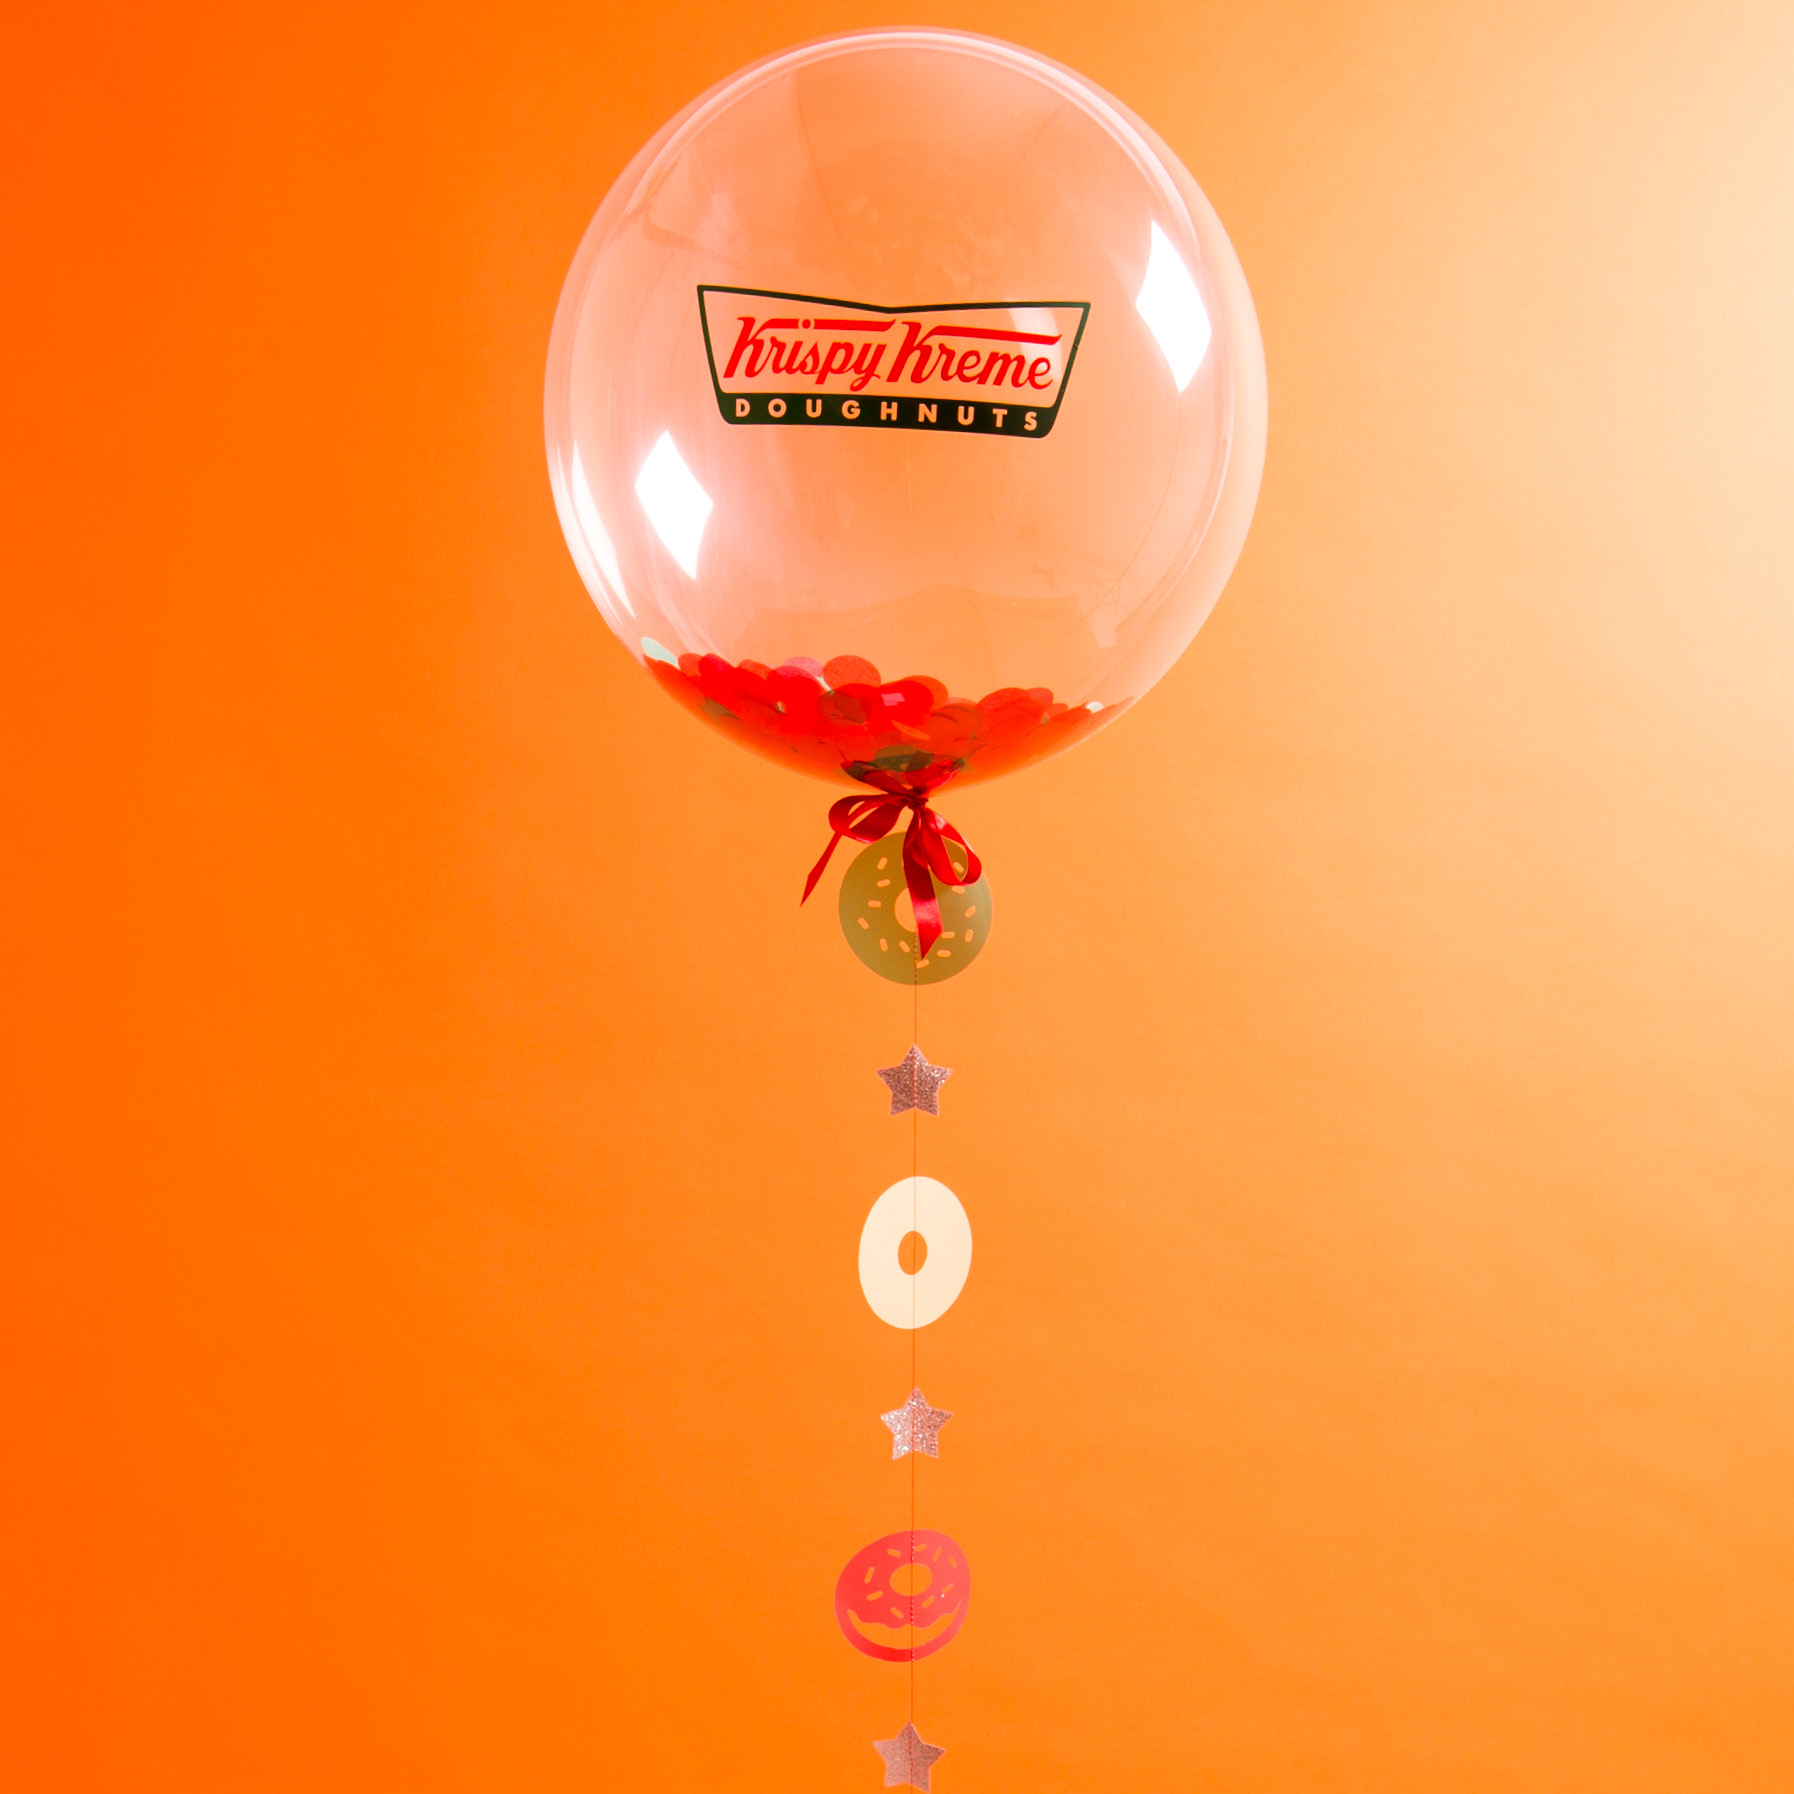 Bubblegum Balloons for Krispy Kreme